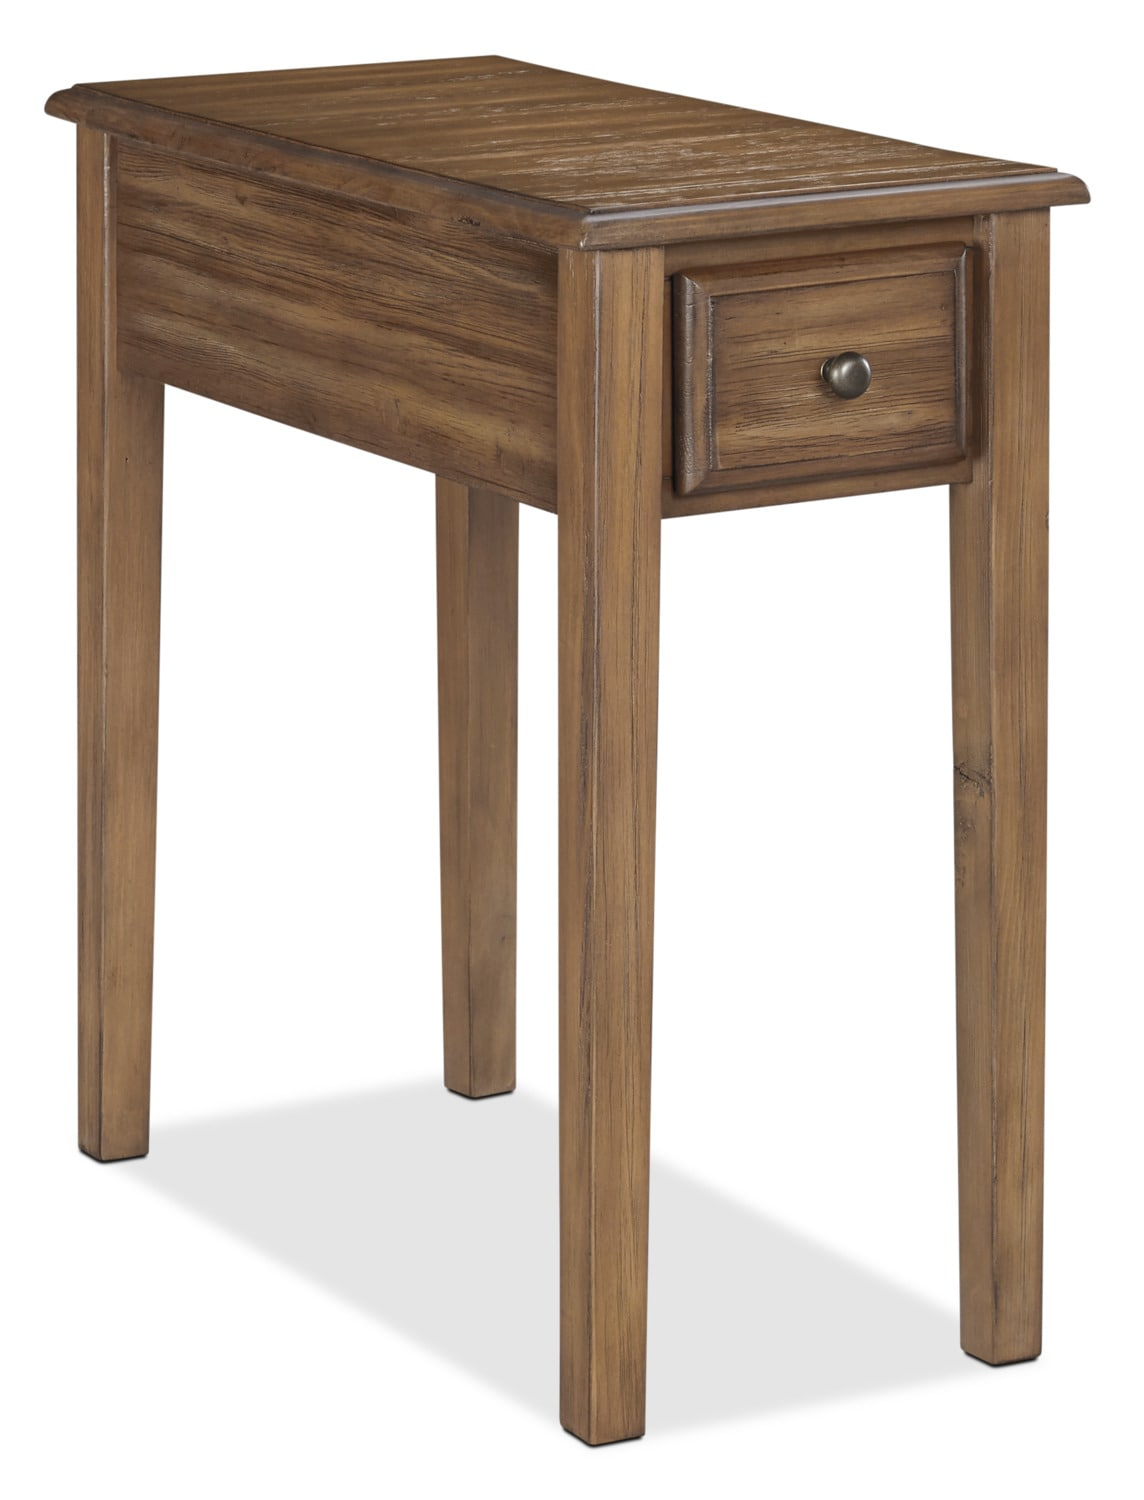 Accent and Occasional Furniture - Weldon Solid Pine Accent Table – Warm Brown